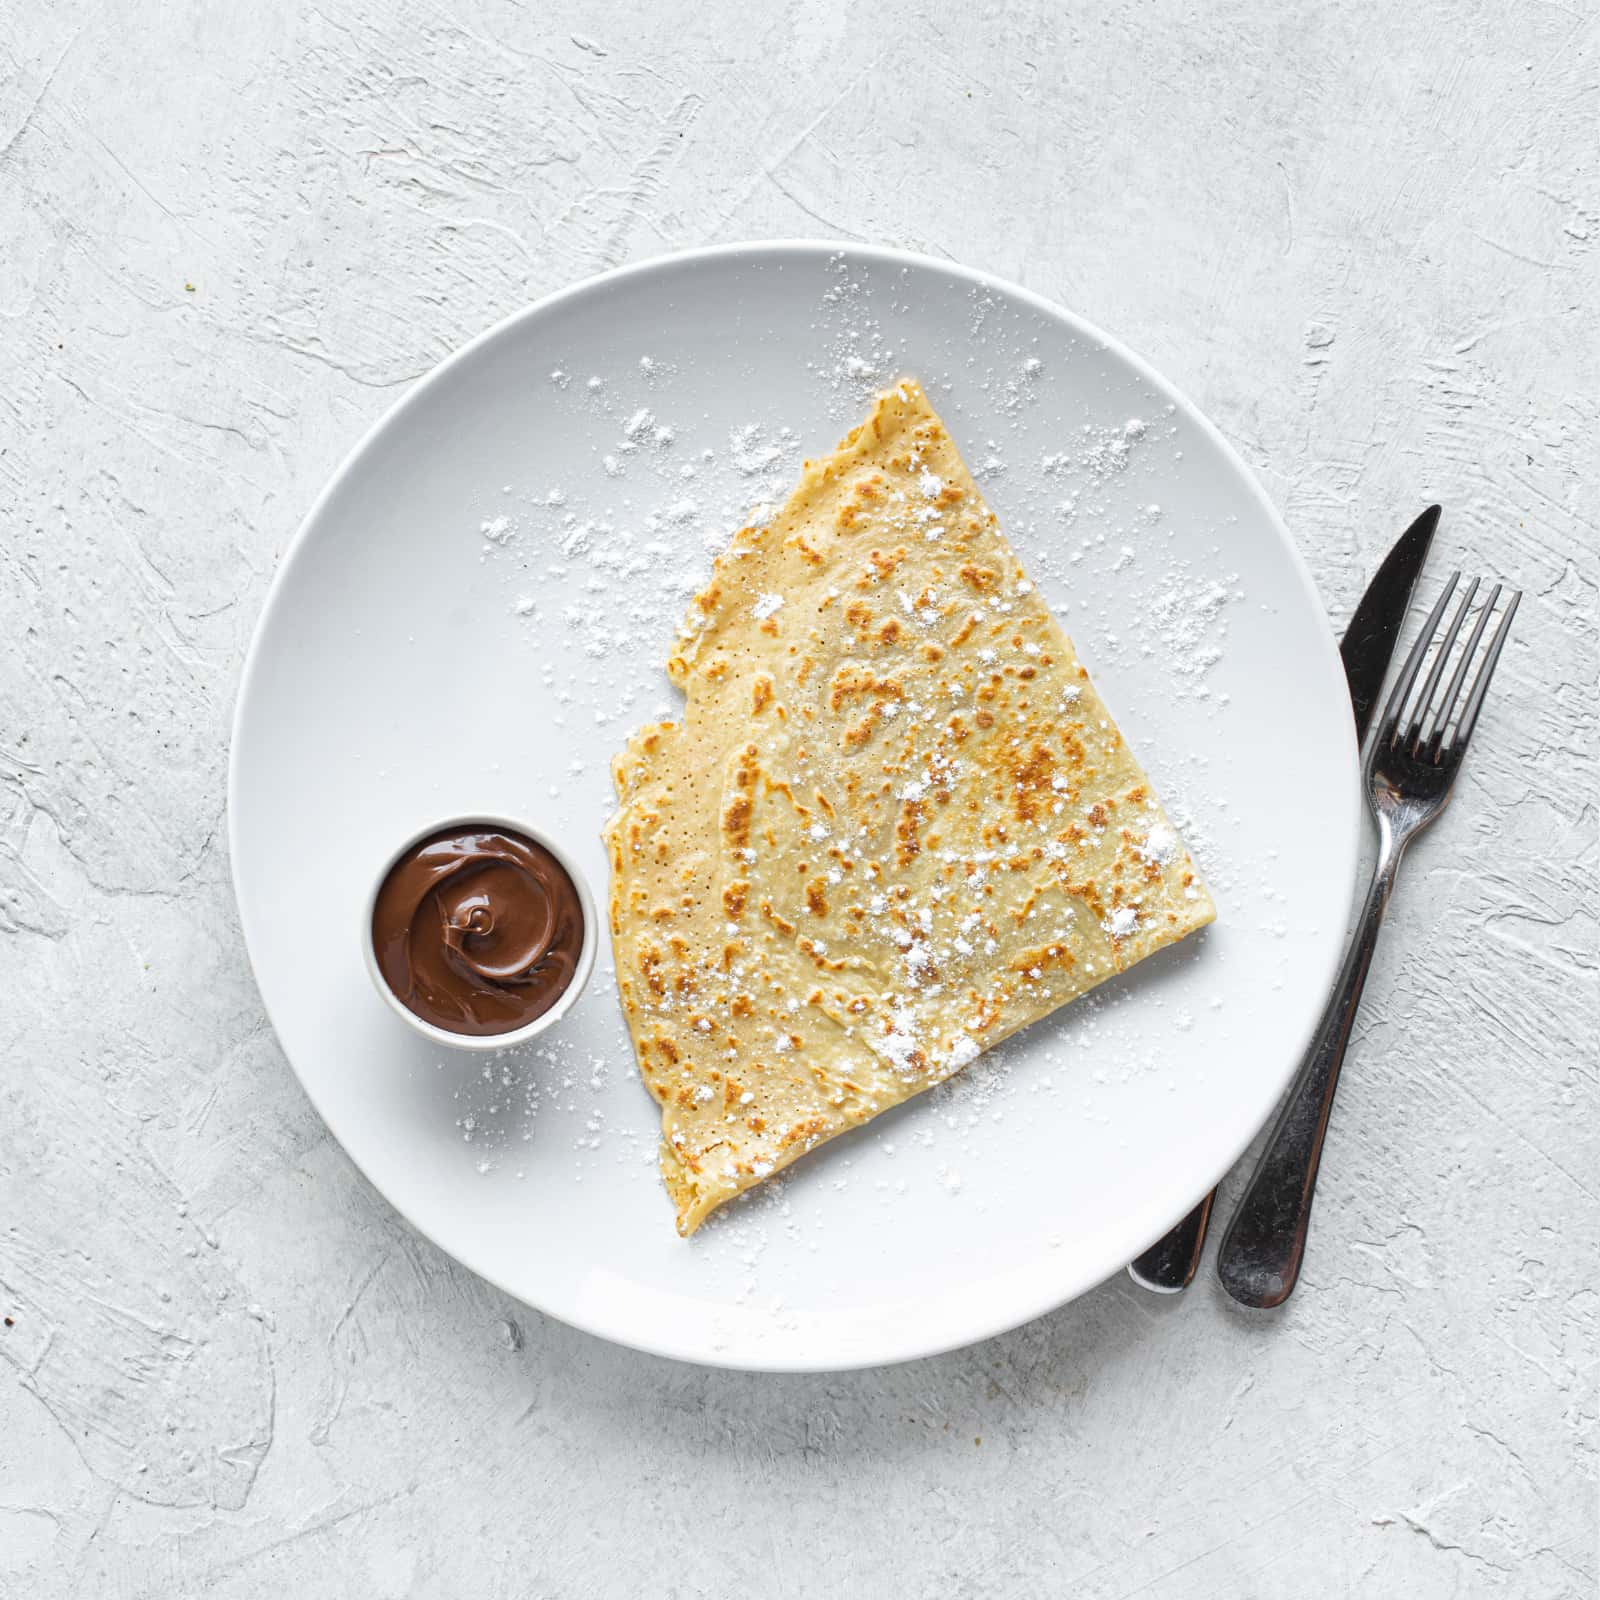 Crep de chocolate blanco